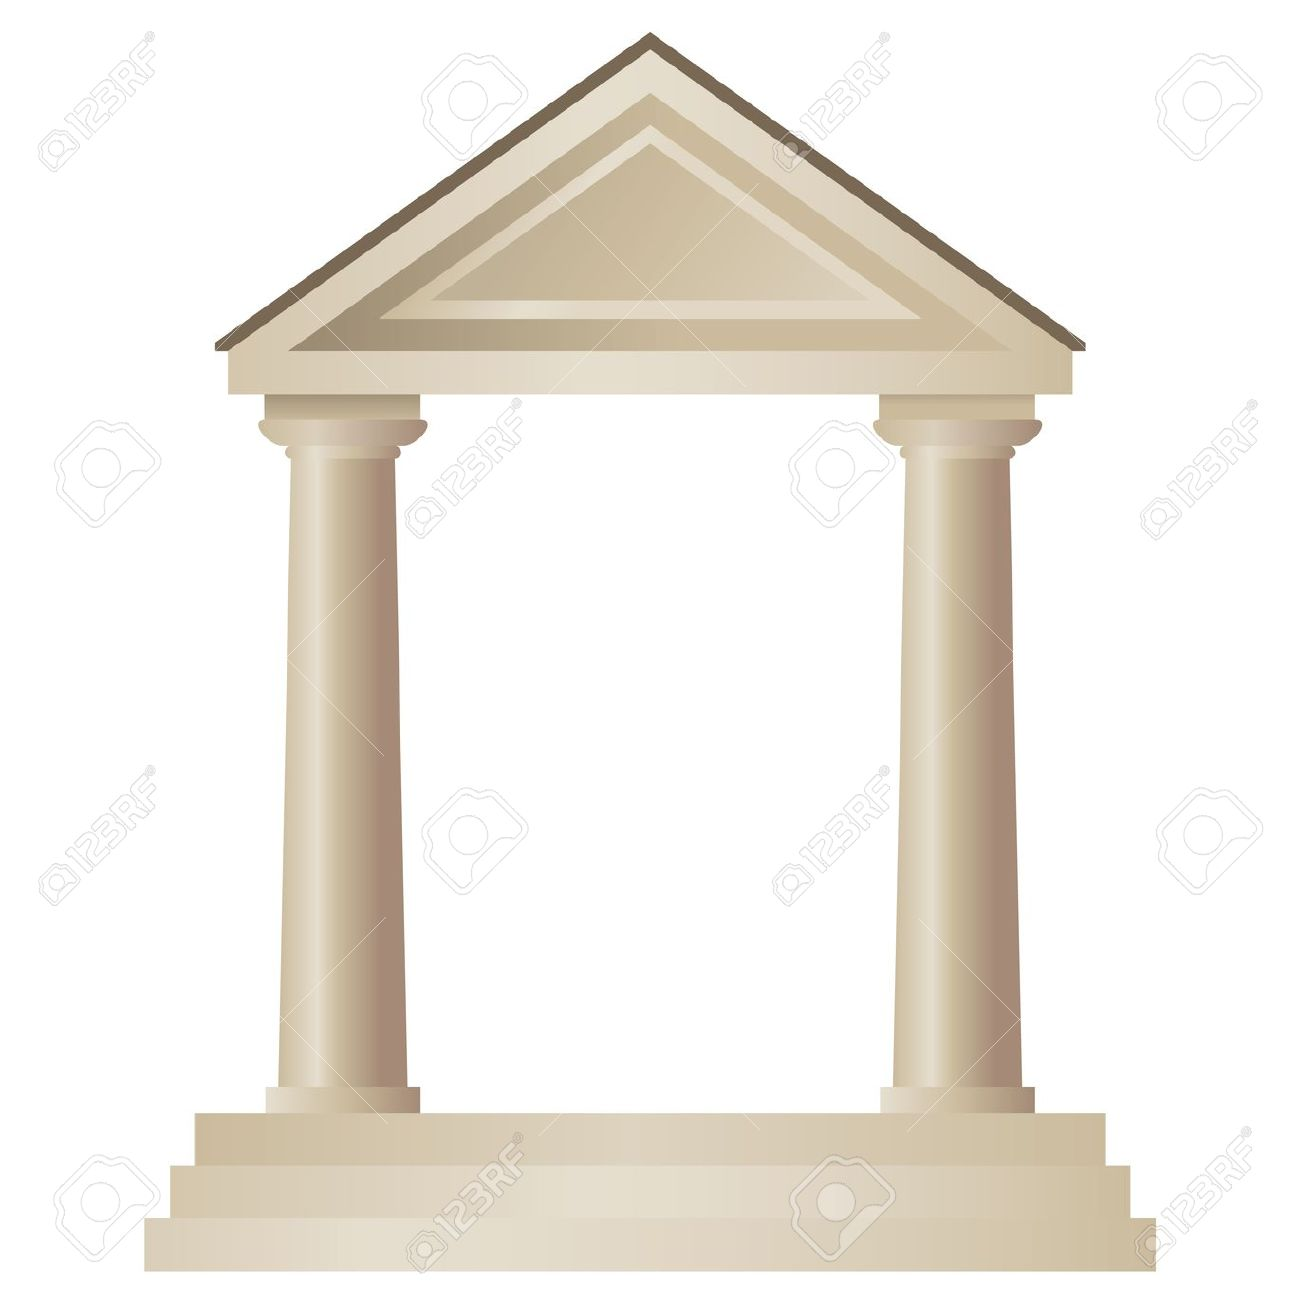 Greek building clipart black and white library 2,985 Greek Building Stock Vector Illustration And Royalty Free ... black and white library